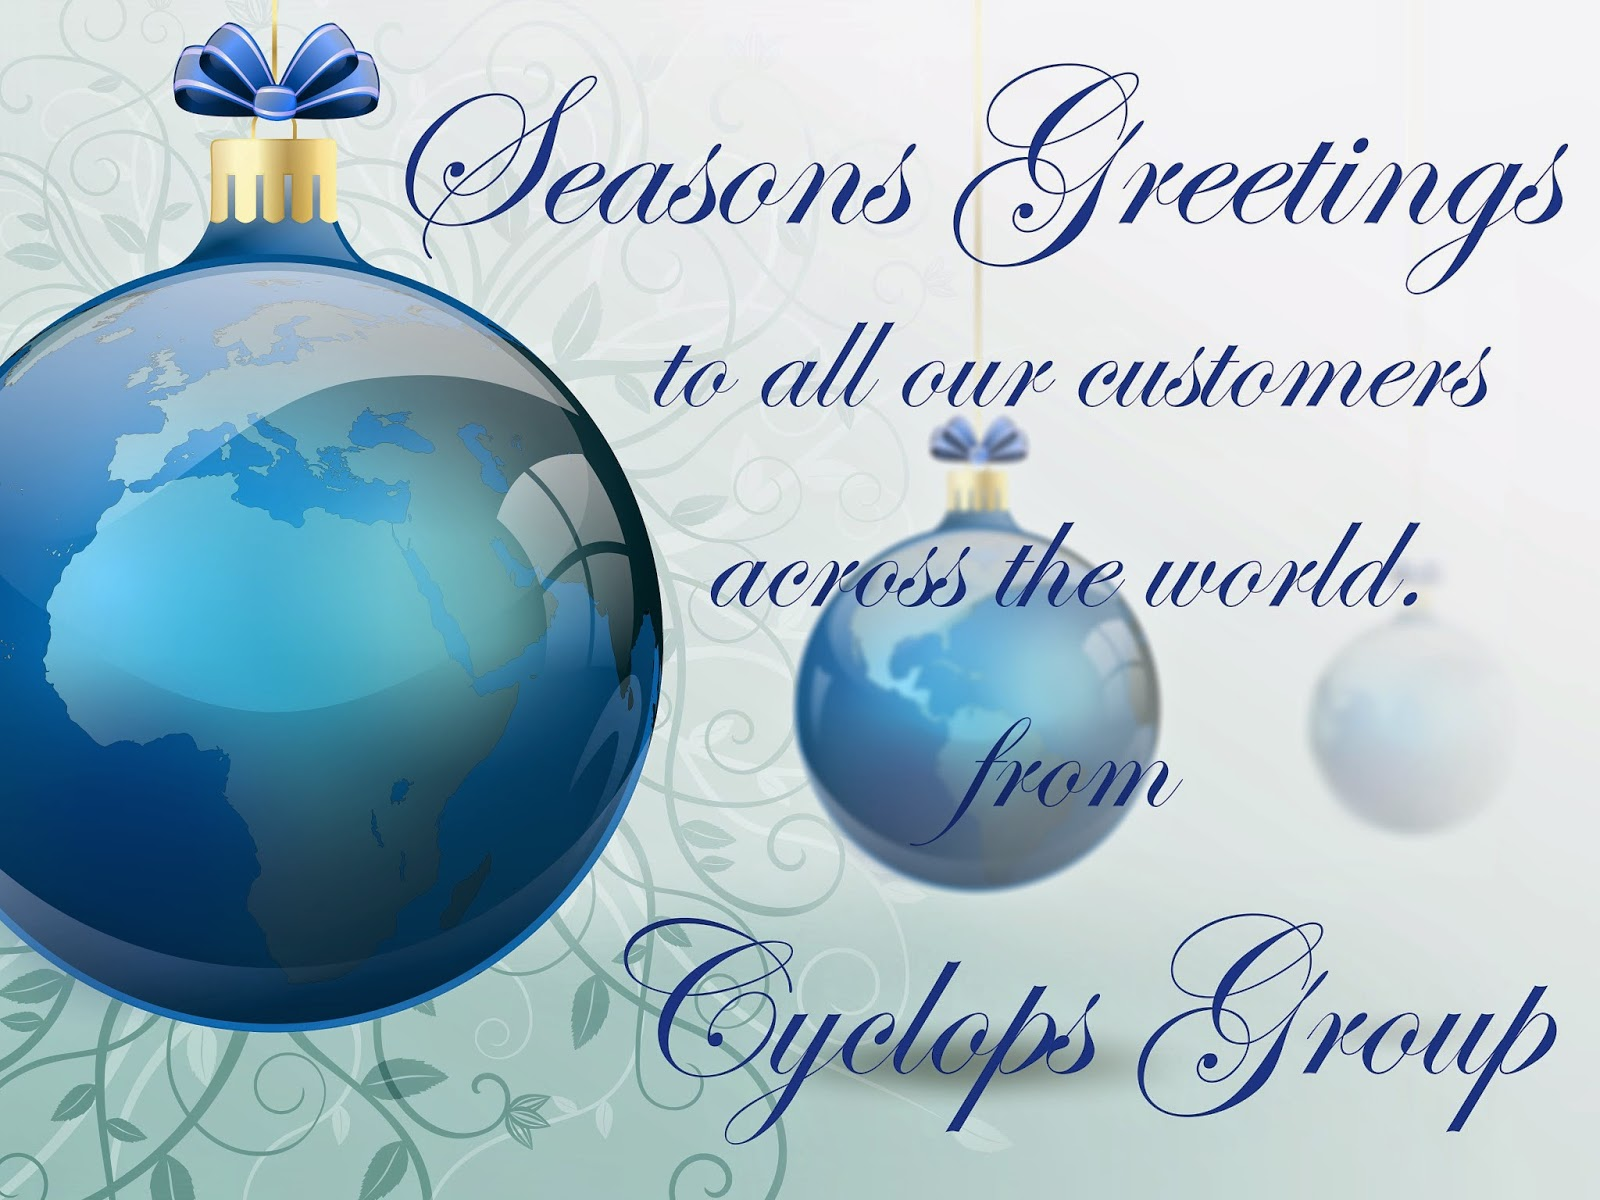 Cyclops Electronics Ltd Blog Seasons Greetings And Best Wishes For